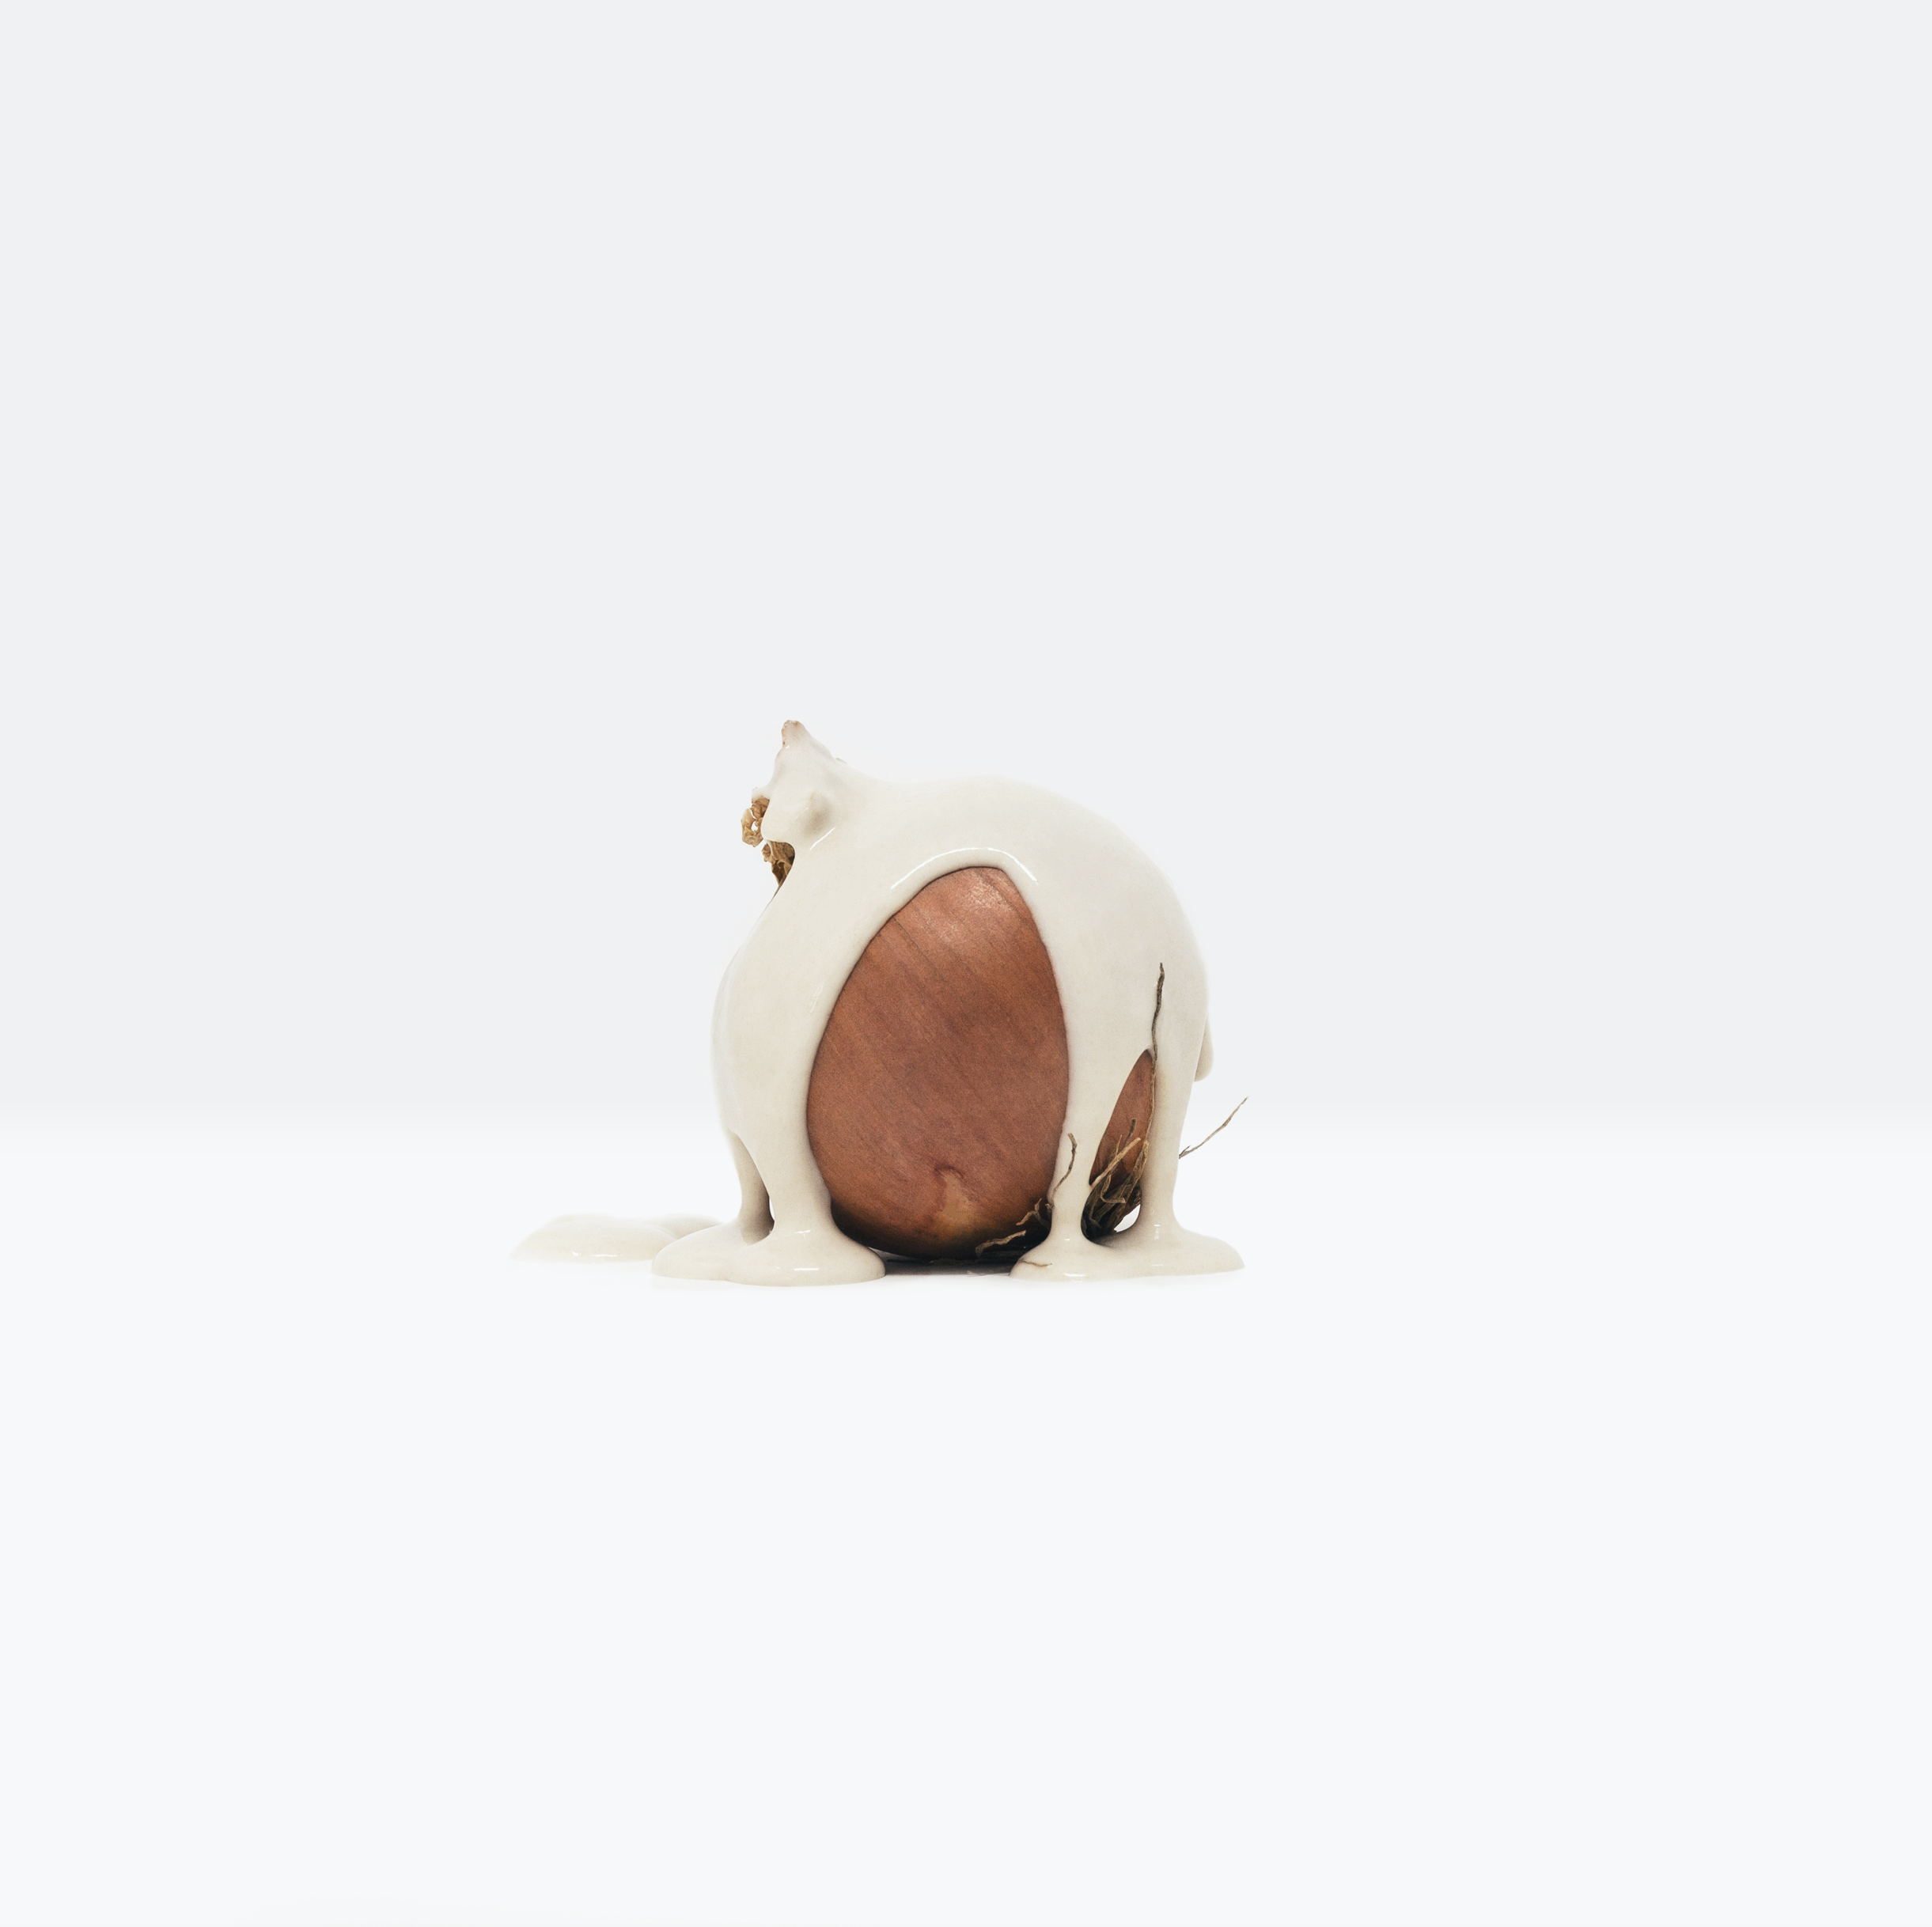 Minimalist, still life photograph of an onion covered in a paint-like substance highlighting the value of food, evoking the crucial reflection of the Global Food Crisis